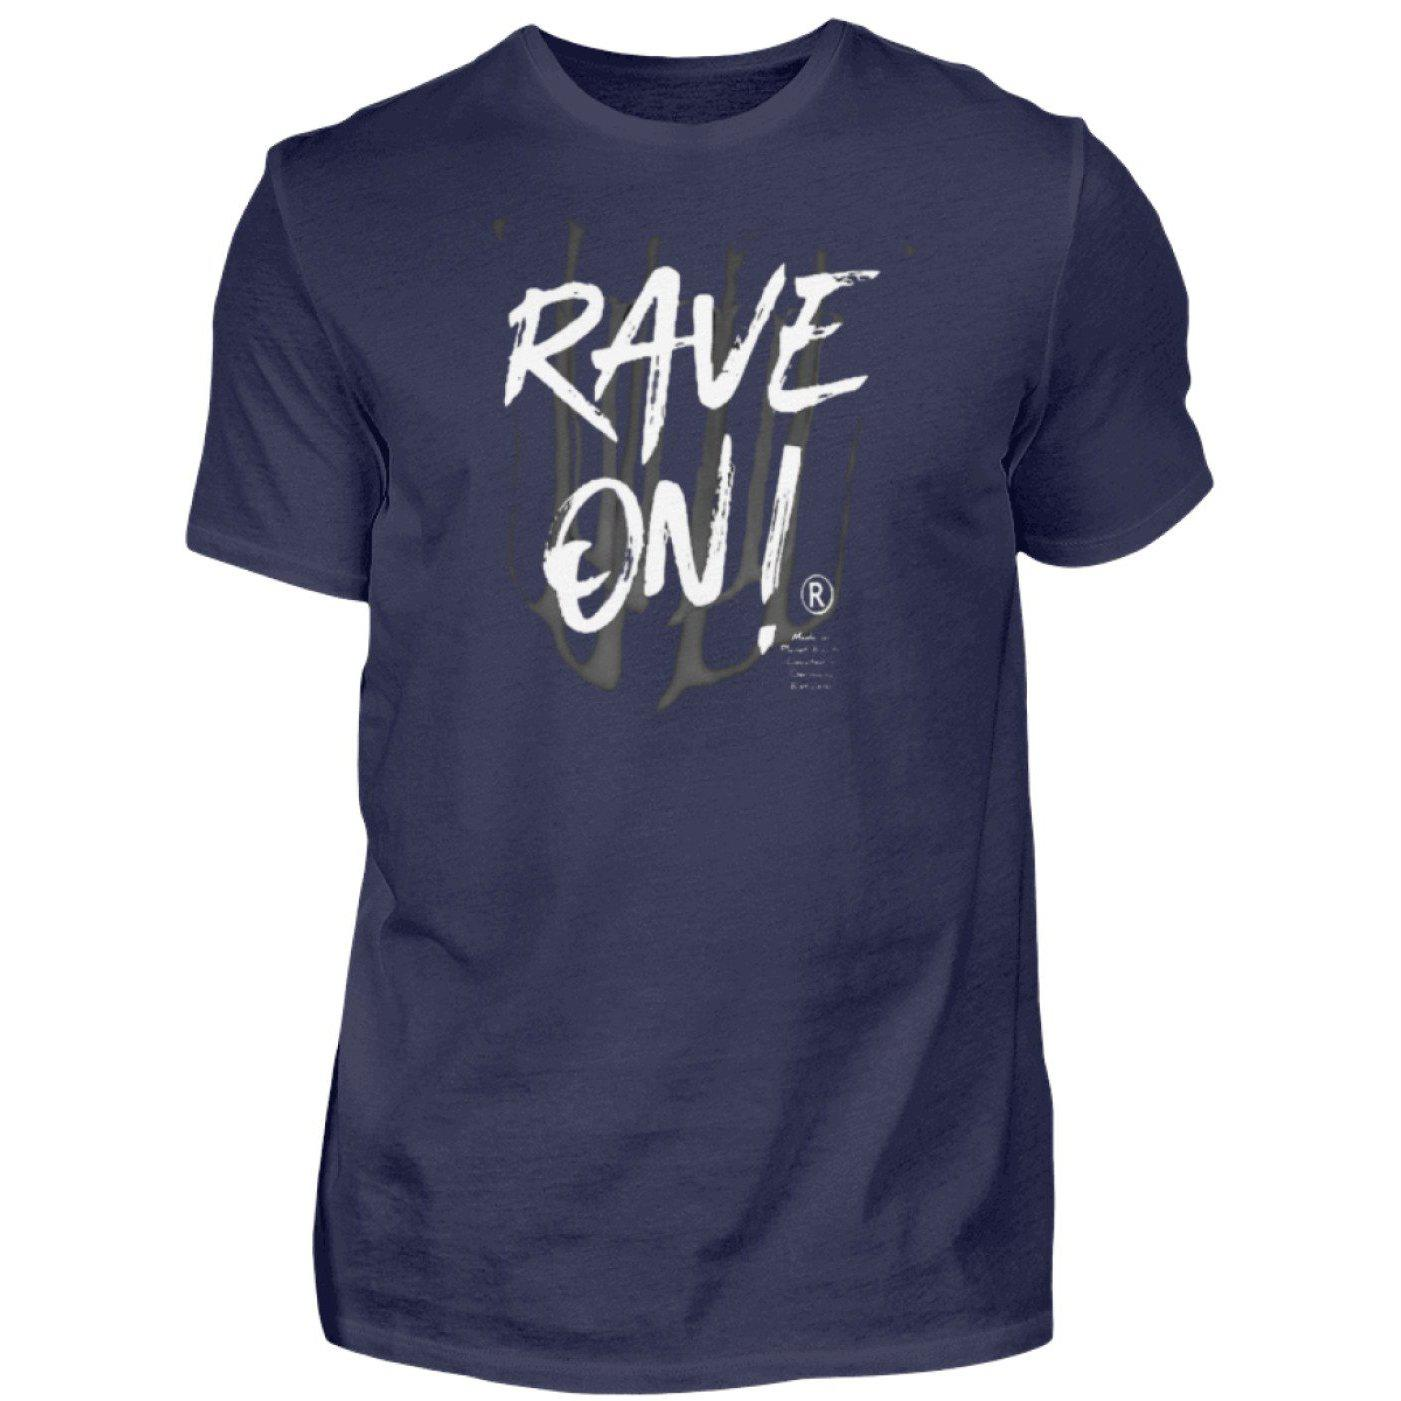 Rave On!® - Made On Planet Earth B2k20 - Herren Premiumshirt-Herren Premium Shirt-Navy-S-Rave-On! I www.rave-on.shop I Deine Rave & Techno Szene Shop I brand, Design - Rave On!® - Made On Planet Earth B2k20, Global recommendation, madeonpr, marke, on, rave, raver, techno - Sexy Festival Streetwear , Clubwear & Raver Style